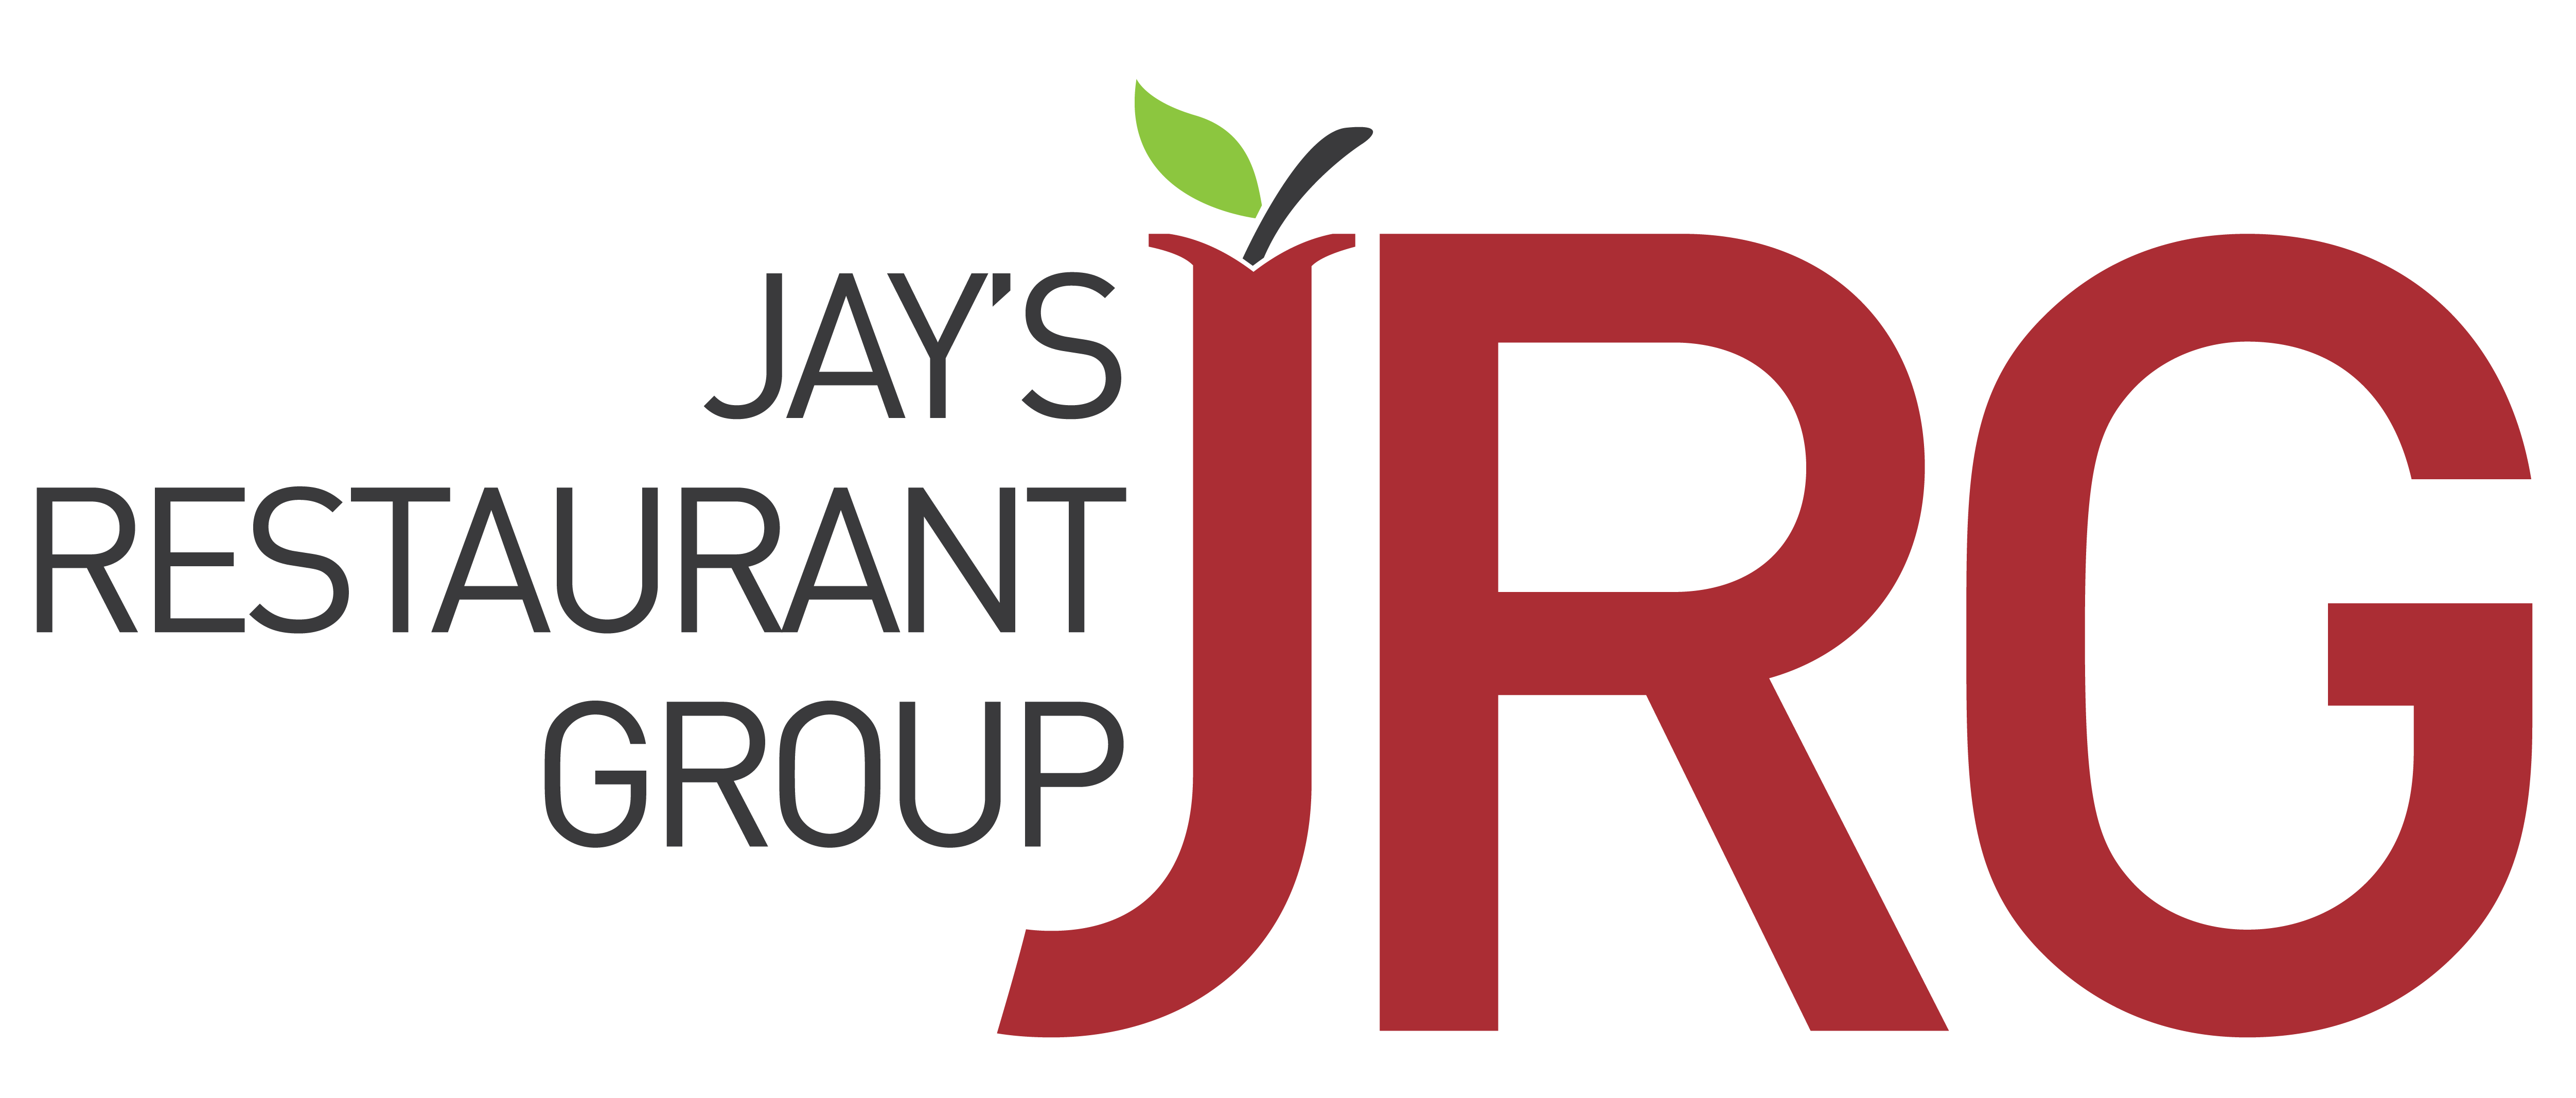 Jay's Restaurant Group